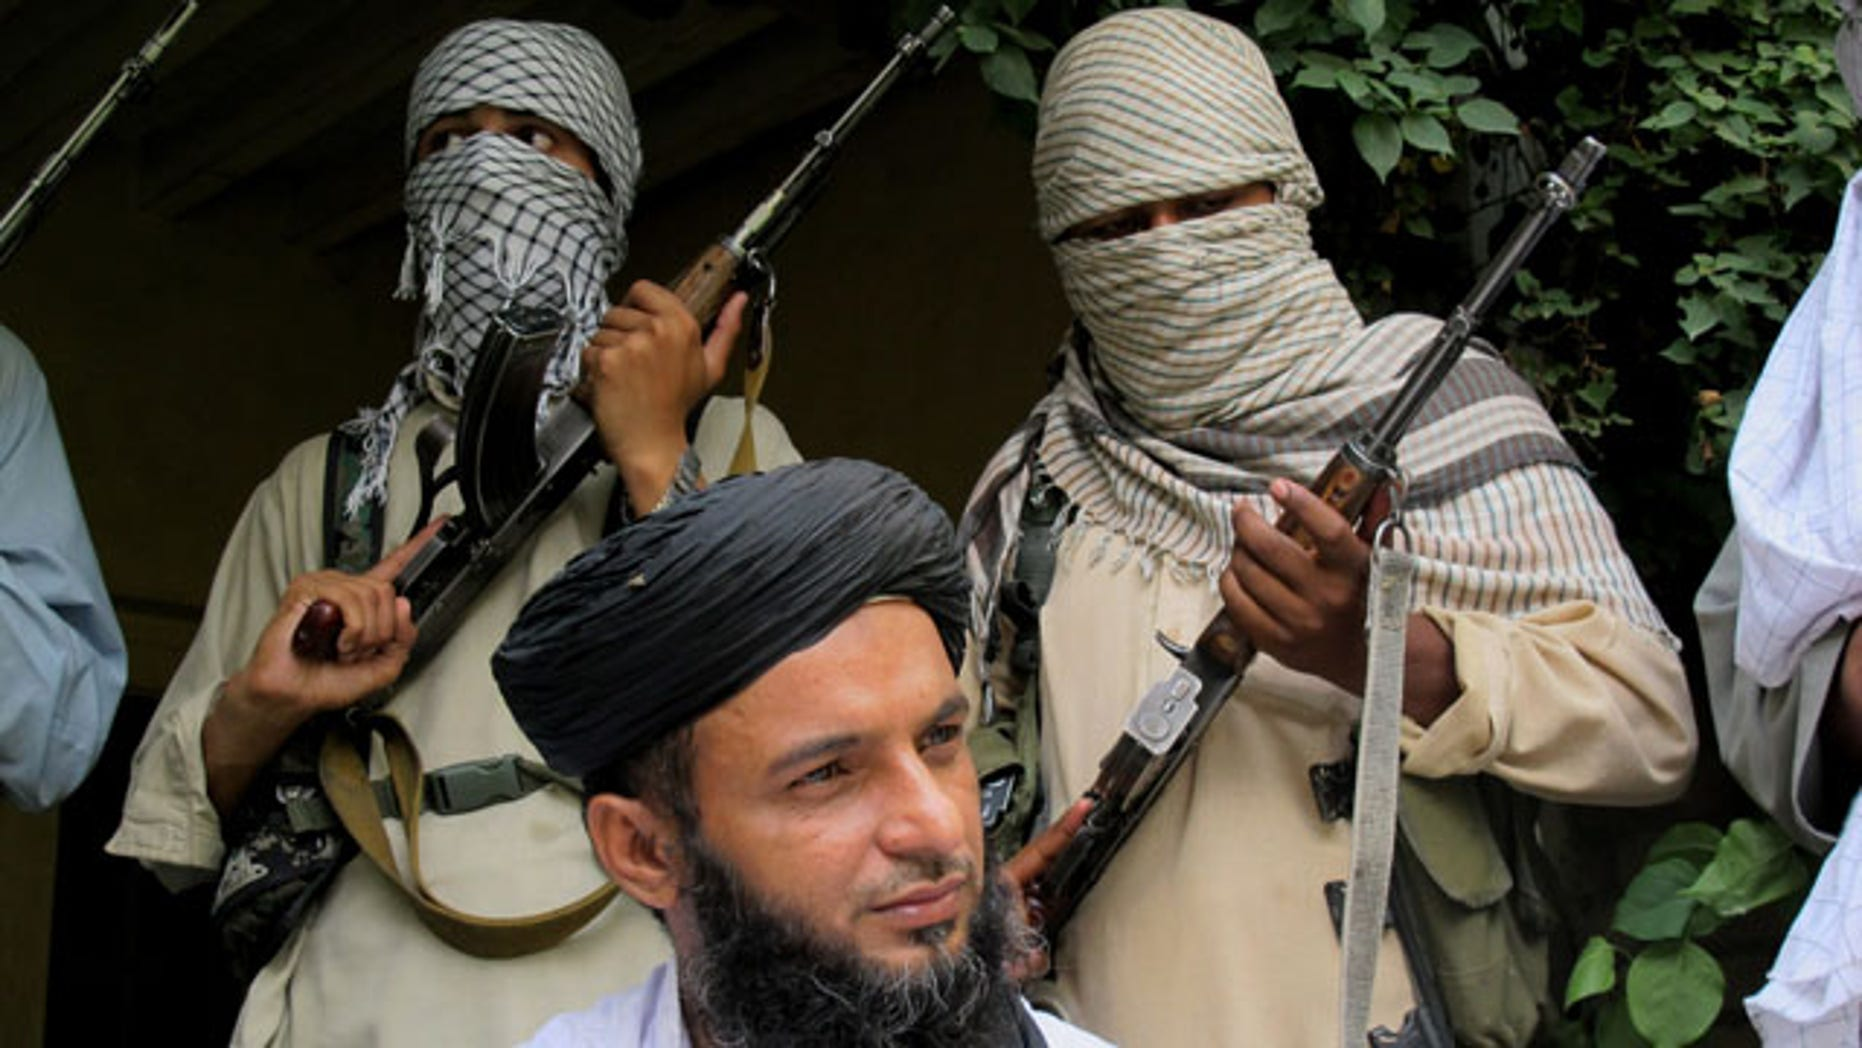 August 15, 2013: Asmatullah Muawiya, head of Tehrik-i-Taliban Pakistan Punjab, talks to media at an undisclosed place in Pakistani tribal region of Waziristan. Militants in Pakistan's most populous province are said to be training for what they expect will be an ethnic-based civil war in neighboring Afghanistan after foreign forces withdraw. (AP Photo)